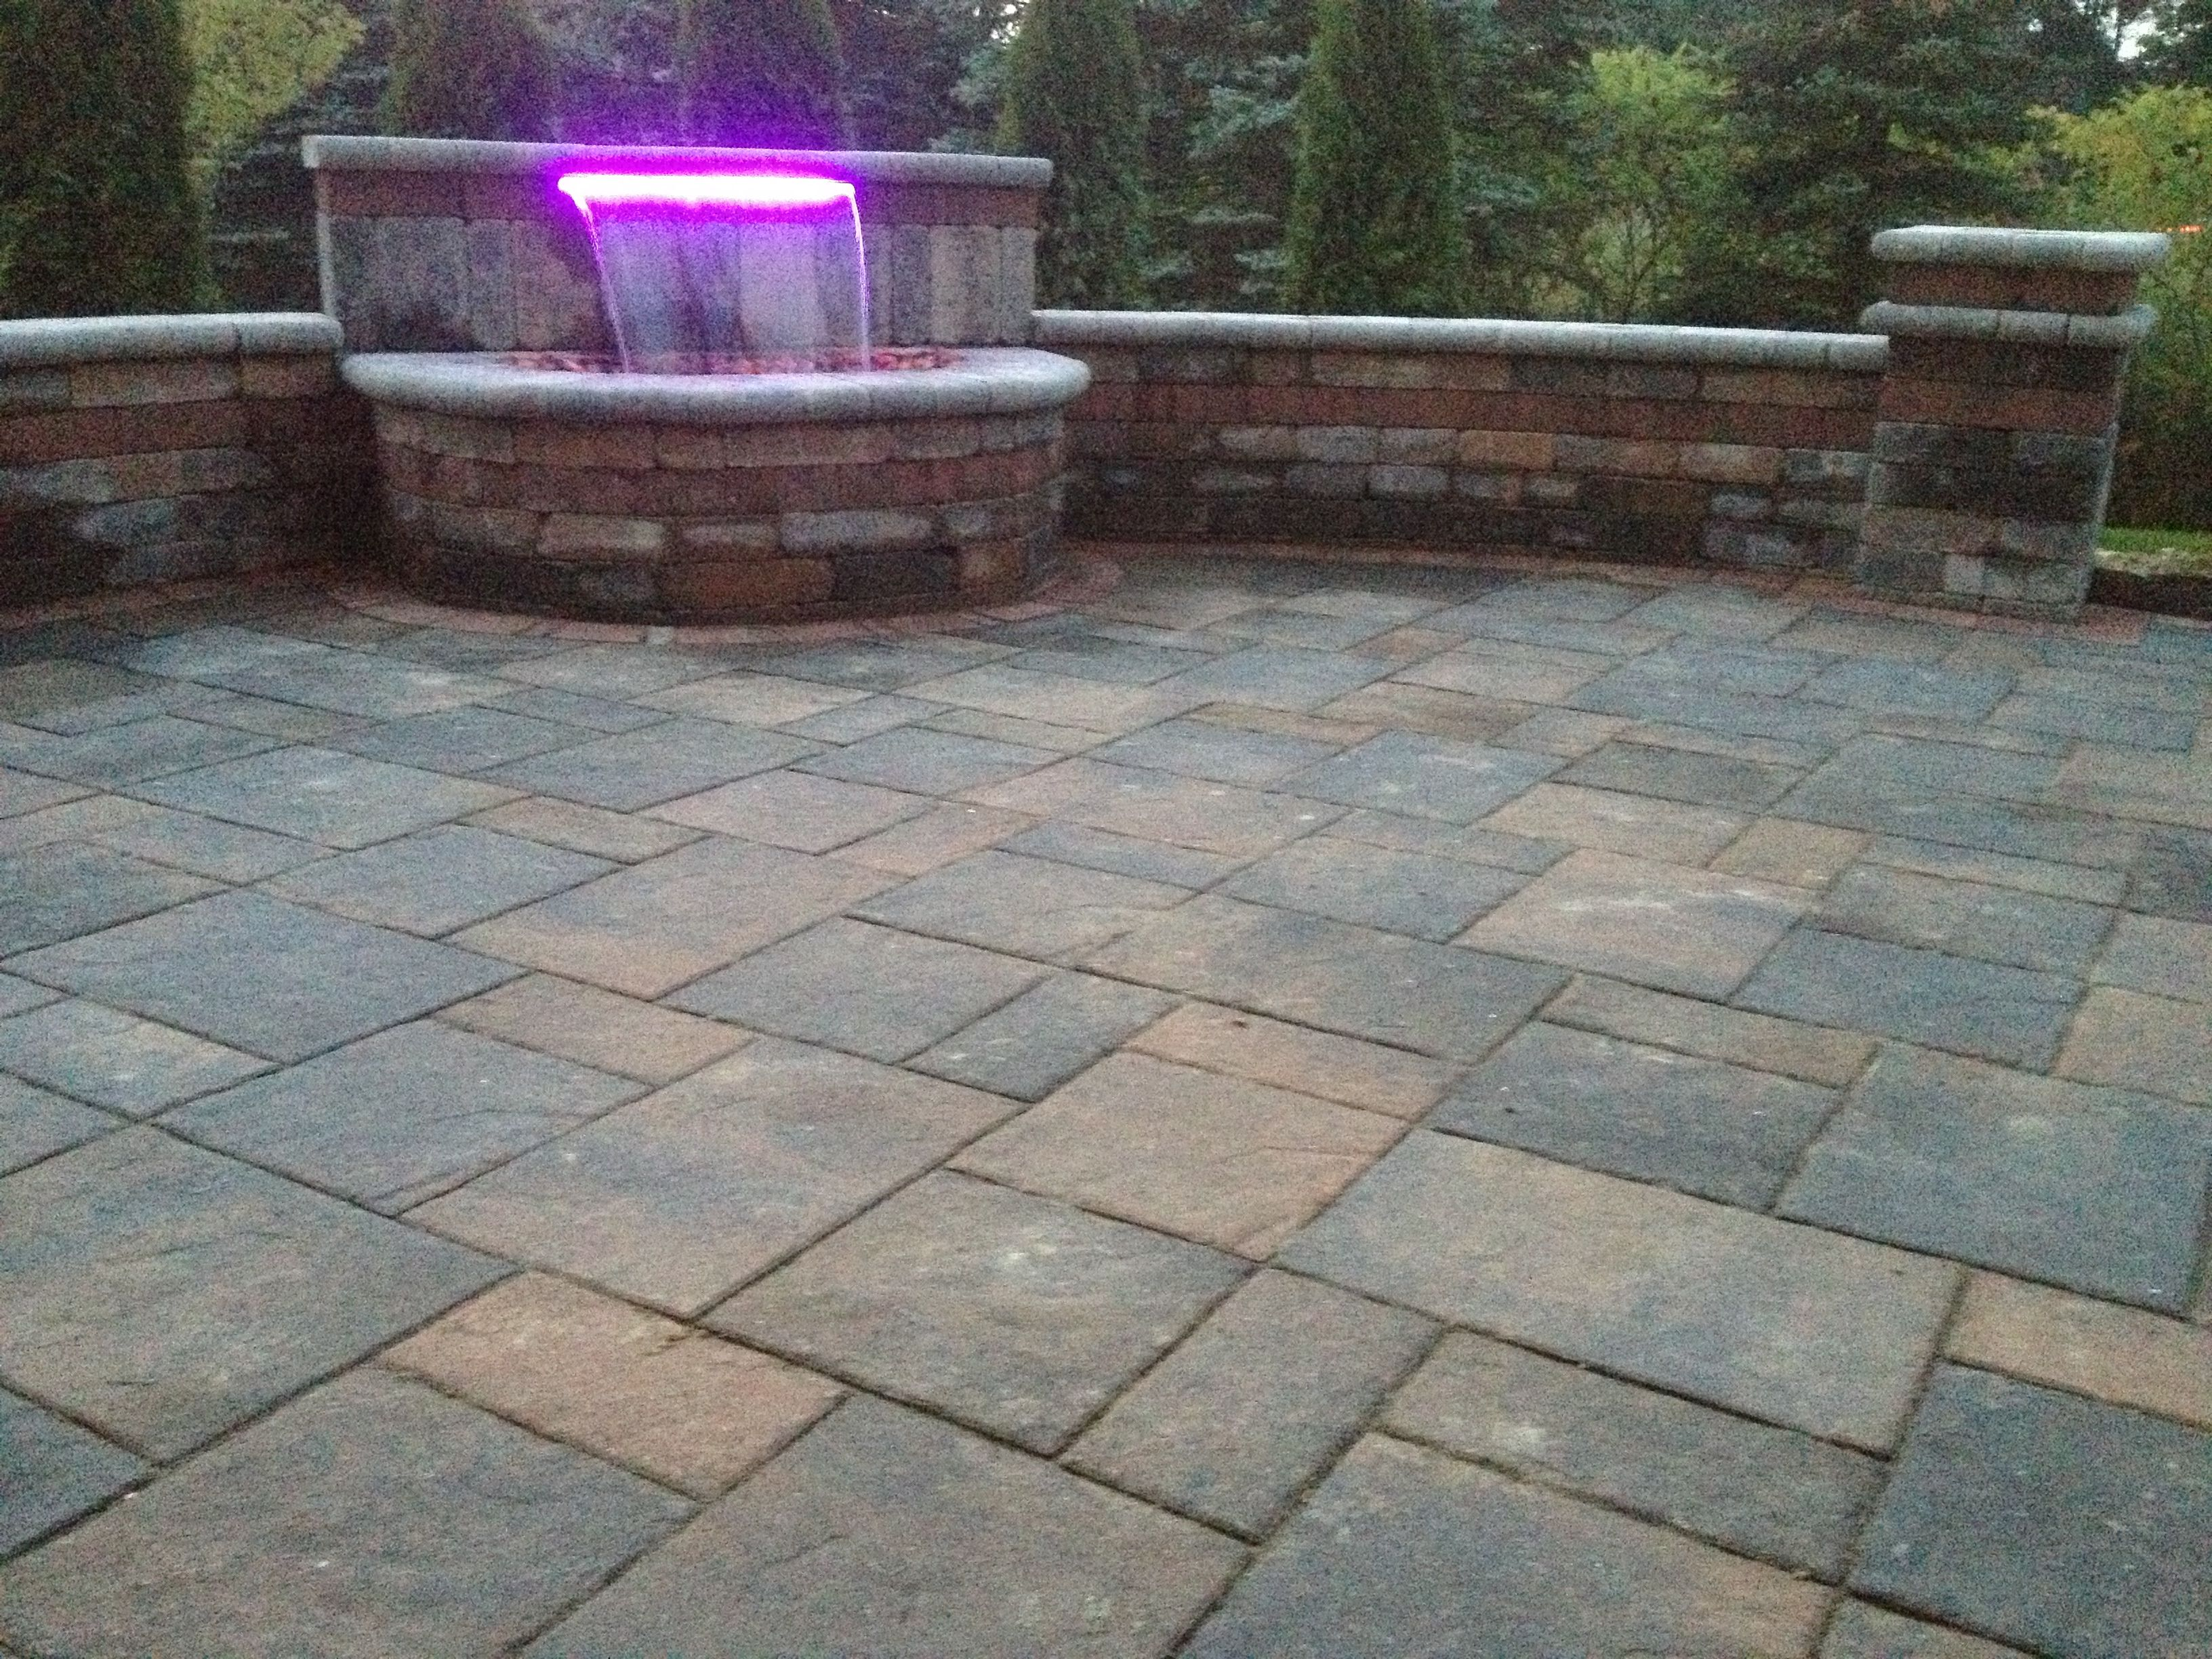 Brick paver patio and waterfall with 16 color LED light All